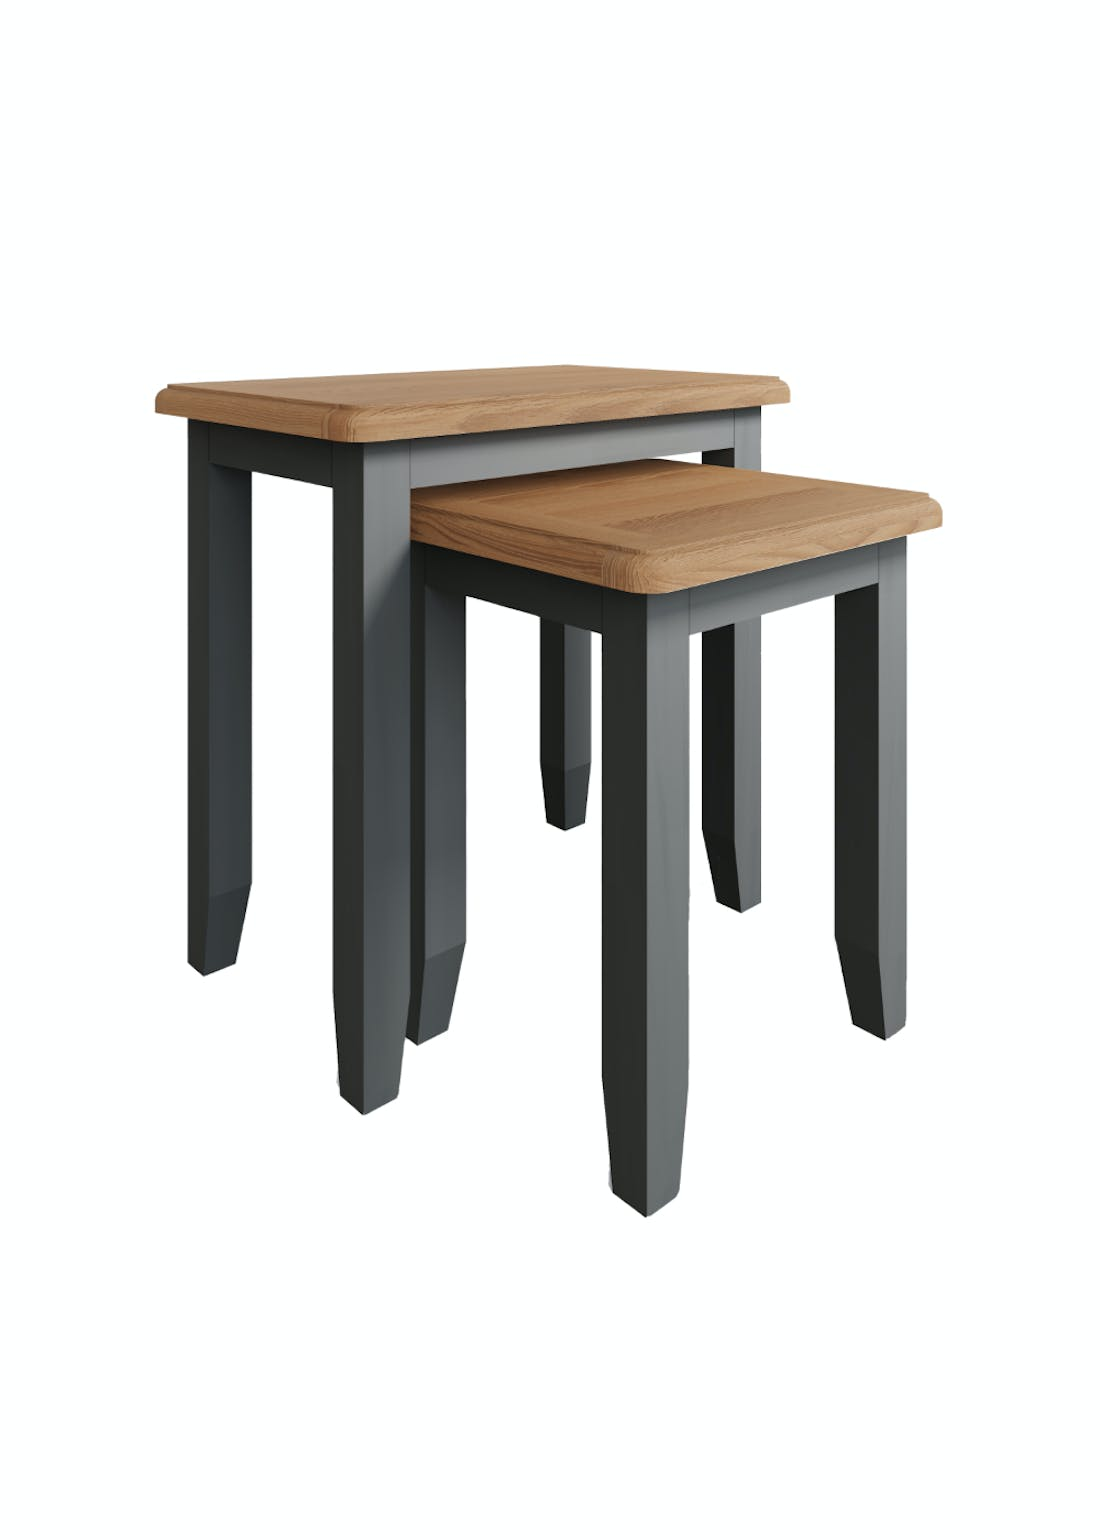 Interiors Direct Grayson Nest of 2 Tables (50cm x 50cm x 32cm)